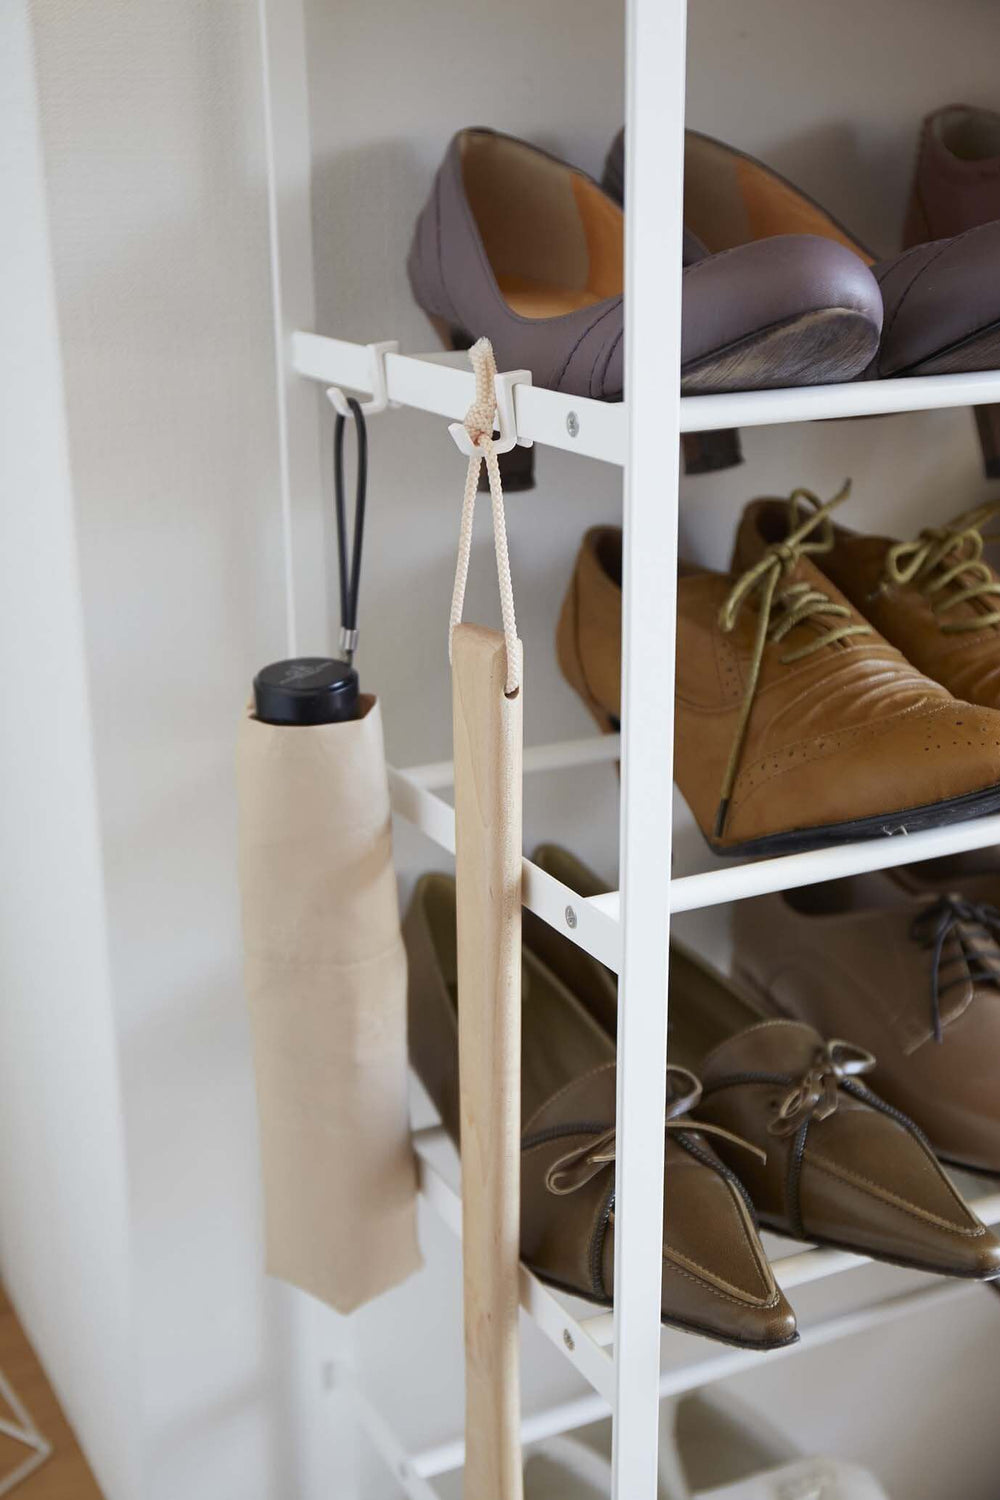 Detail of Yamazaki's white 6 Tier Wood Top Shoe Rack with an umbrella and wooden item hanging from hooks on side of shelves